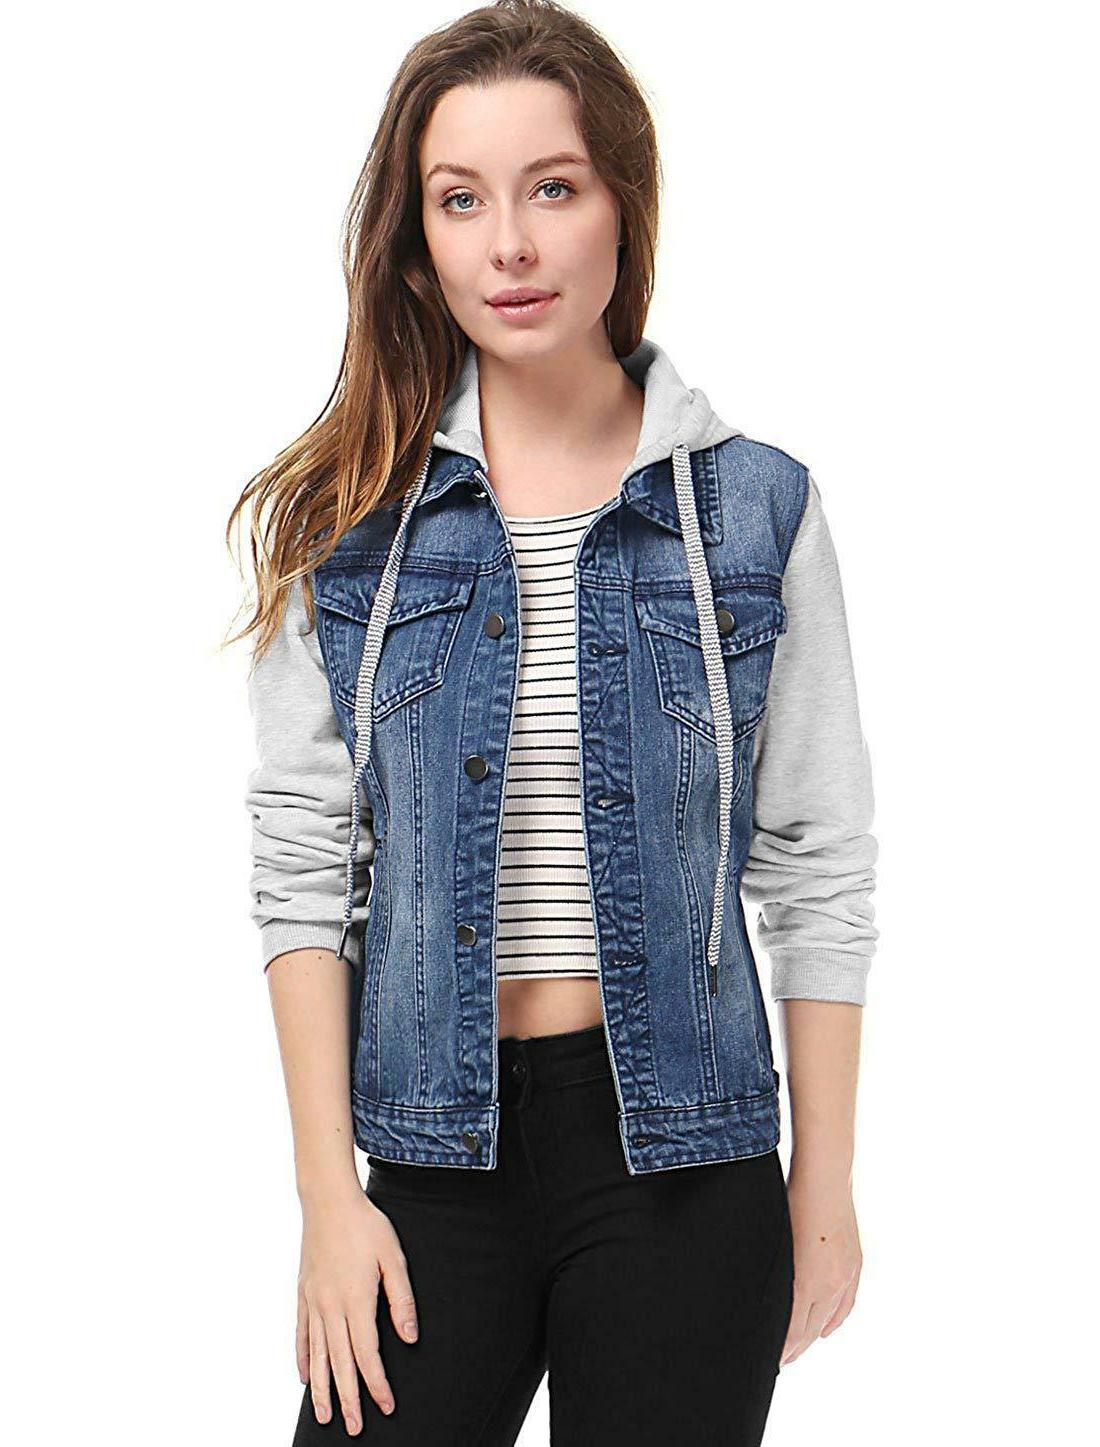 outerwear Women's Layered Drawstring Hood Denim Jacket w Pockets